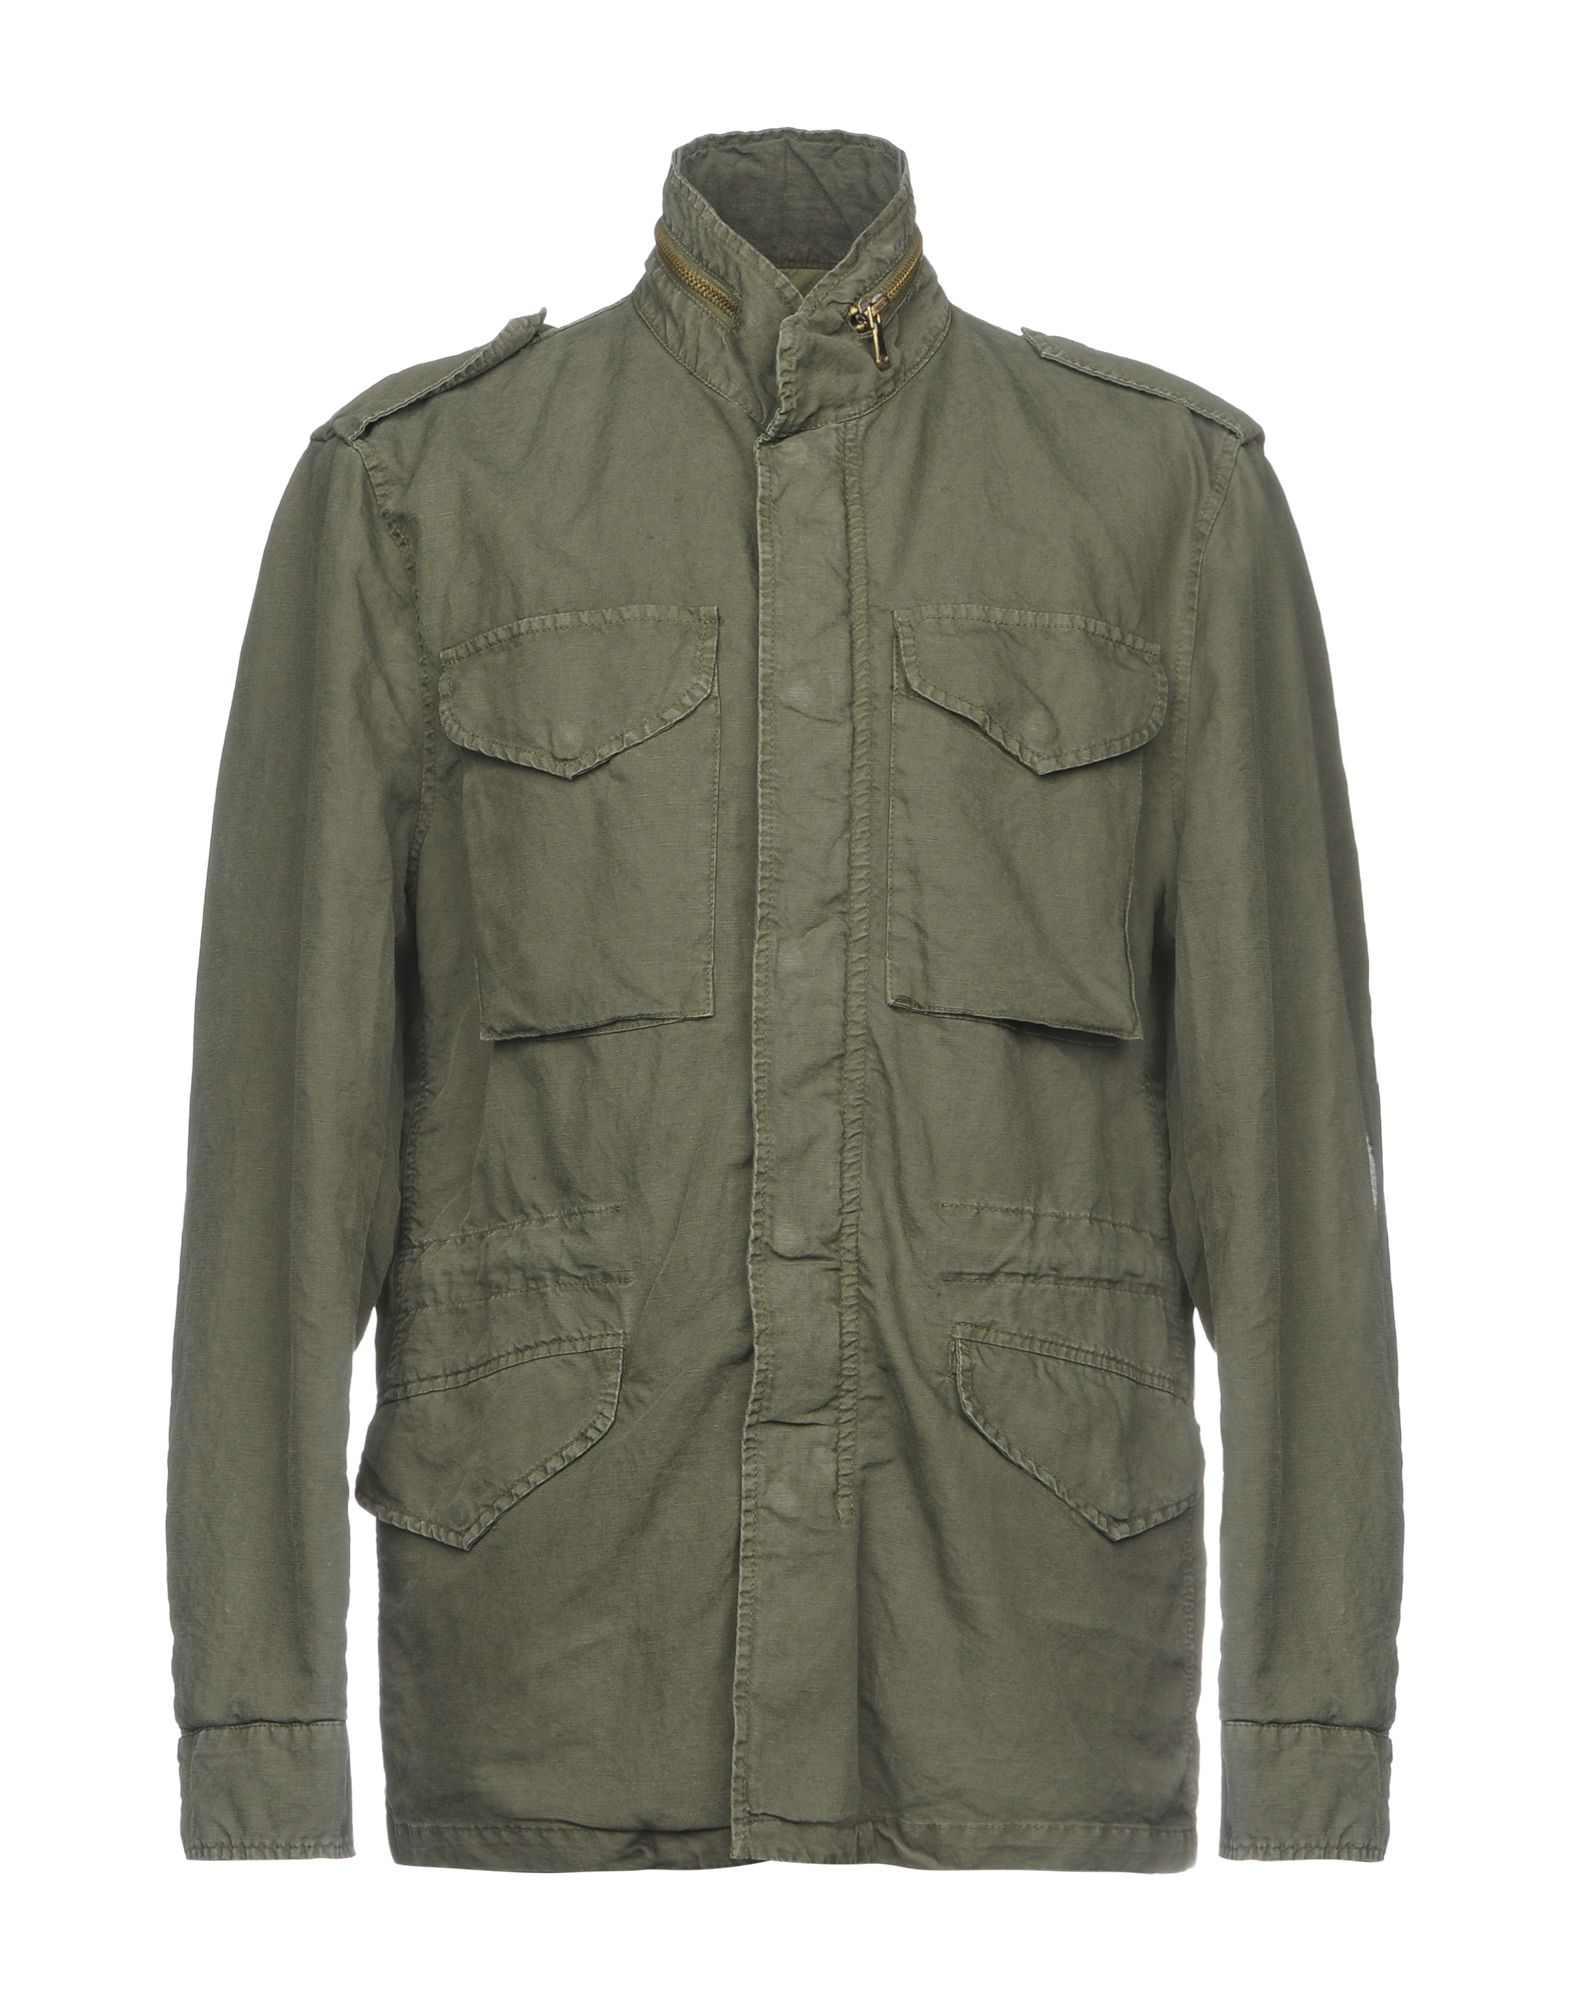 ORIGINAL VINTAGE STYLE Jacket in Military Green